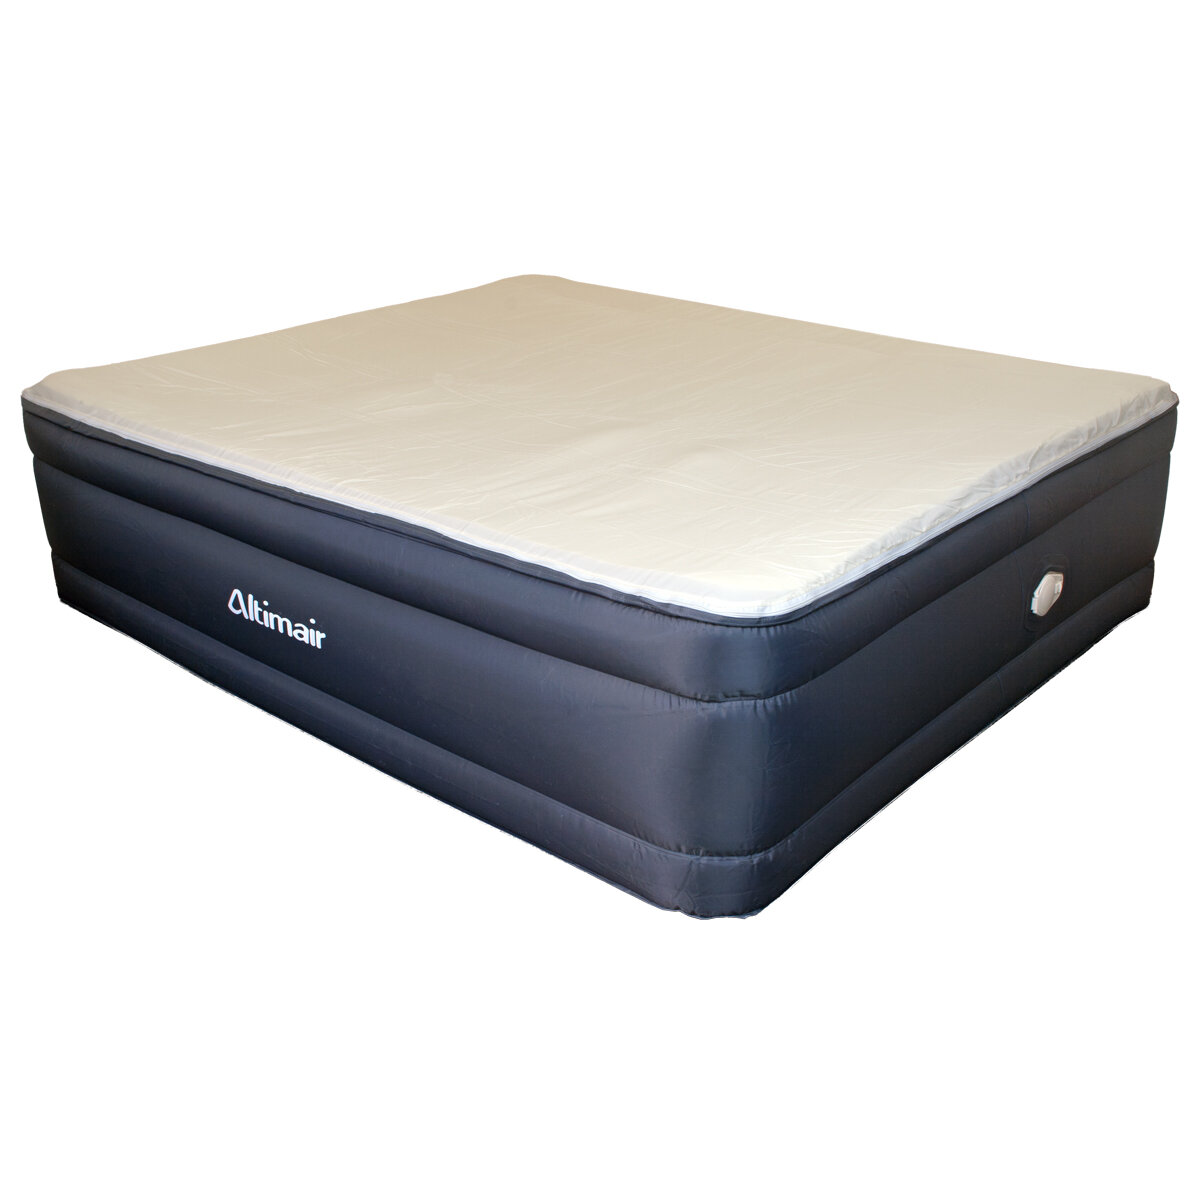 Altimair air beds mattresses lustrous 20 raised memory foam air mattress ebay Where to buy mattress foam